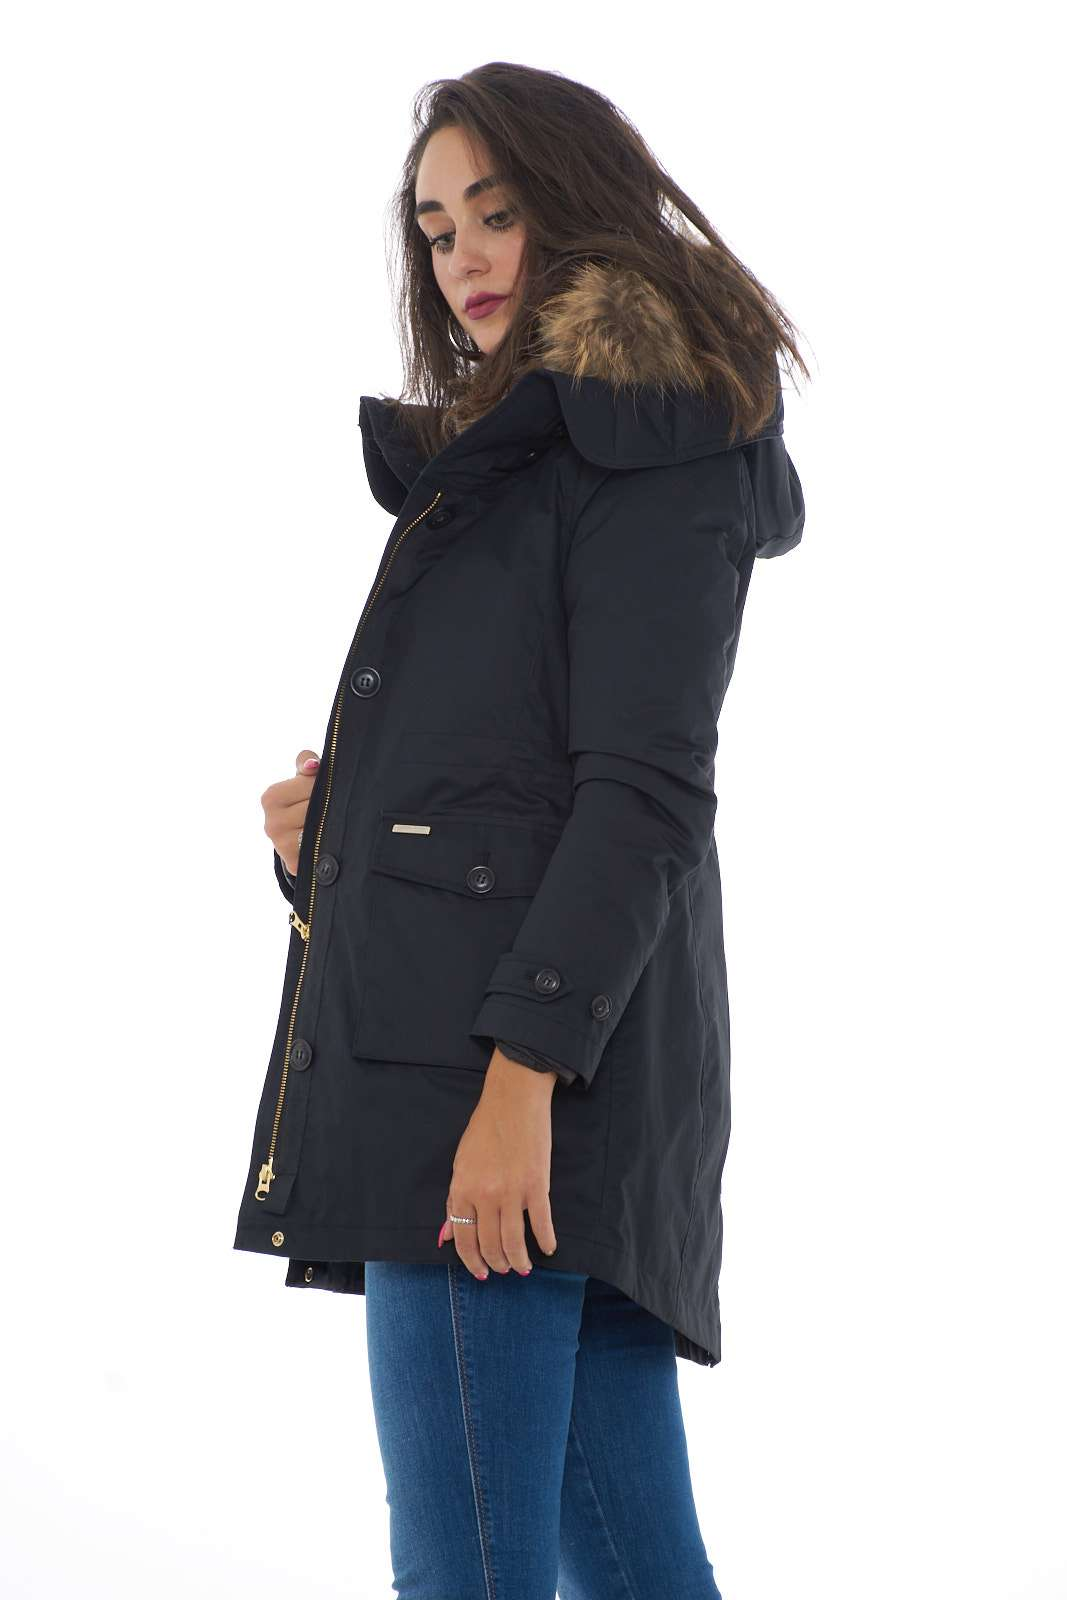 https://www.parmax.com/media/catalog/product/a/i/ai-outlet_parmax-cappotto-donna-woolrich-wwcps2685-b.jpg